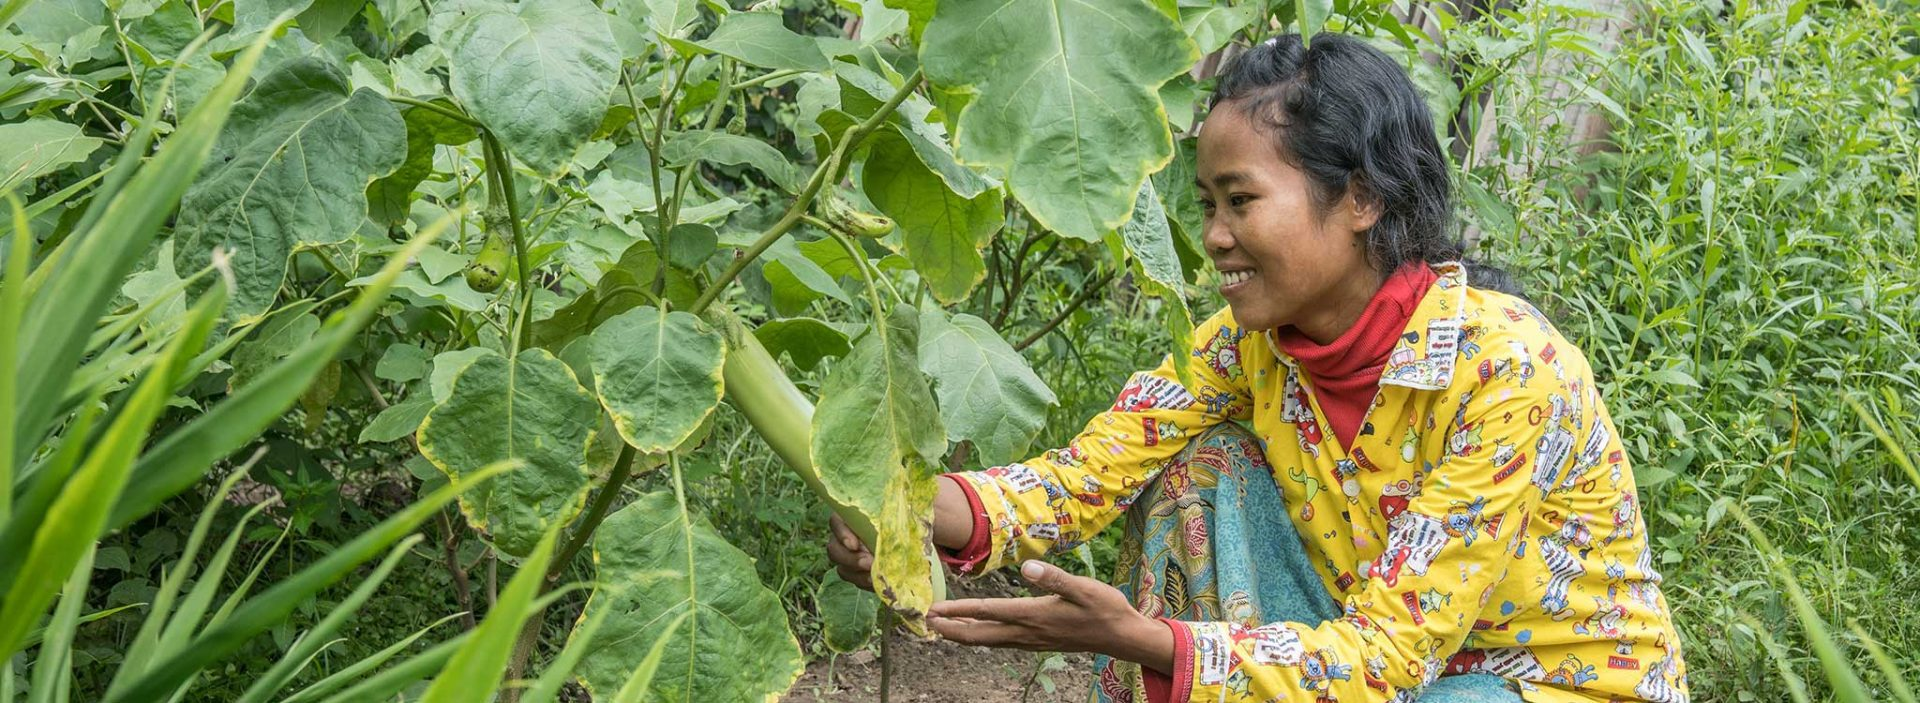 A woman tends to her crops at an Action Against Hunger project in Cambodia.